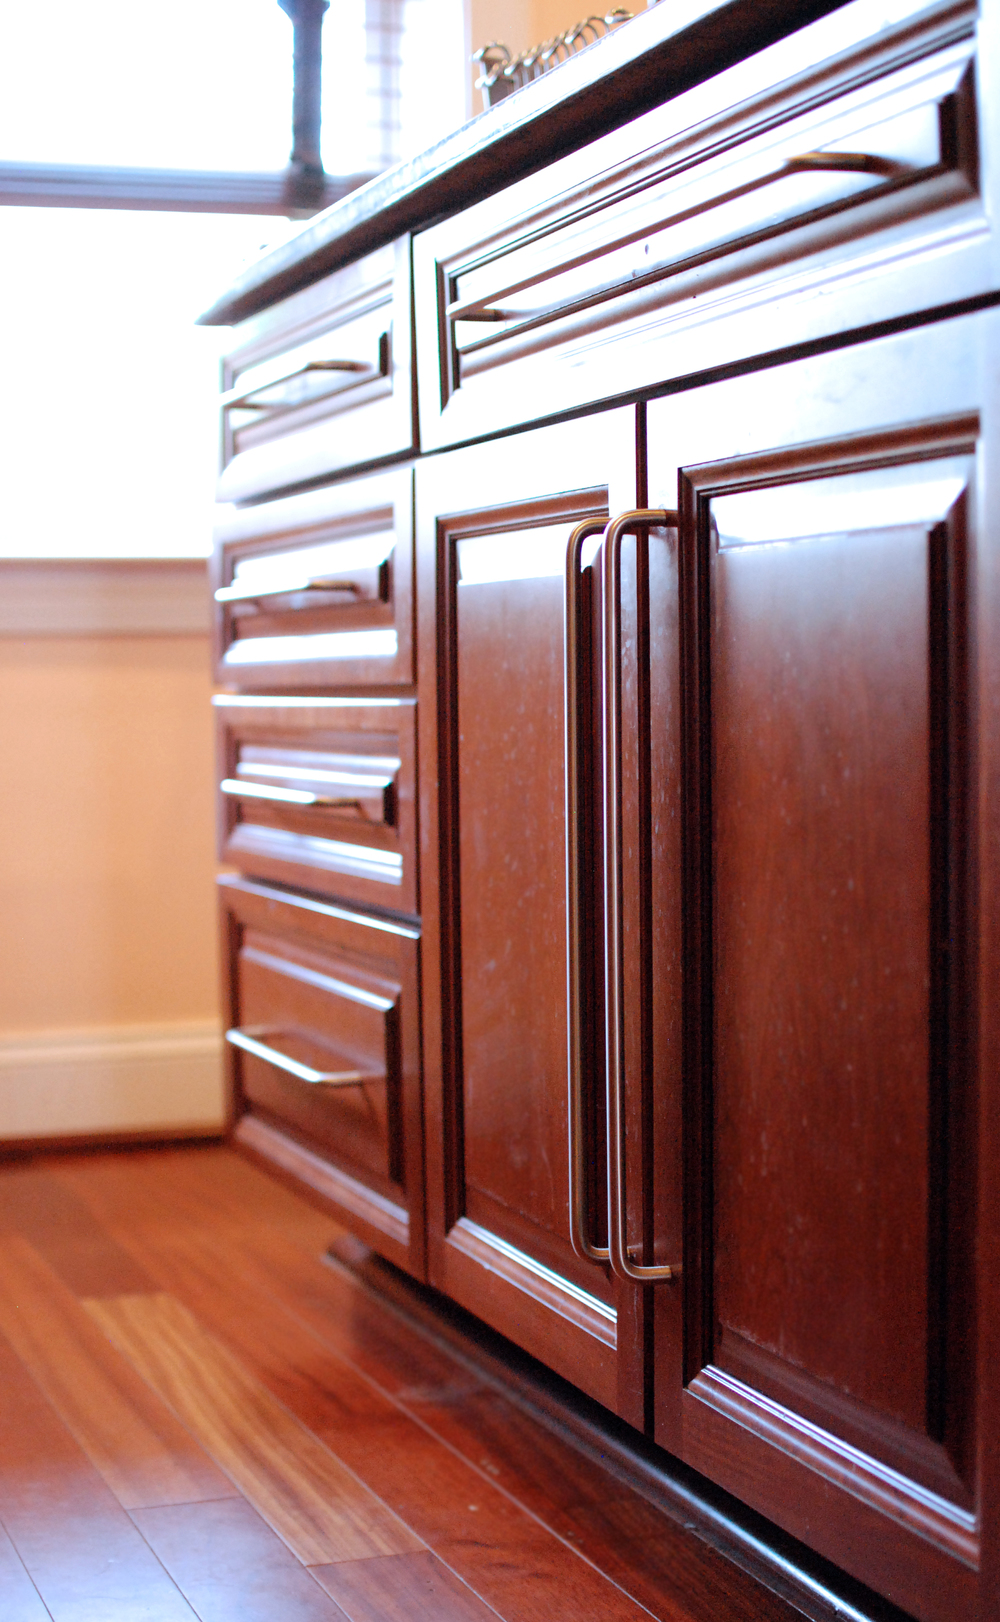 Stainless Steel Cabinet Pulls